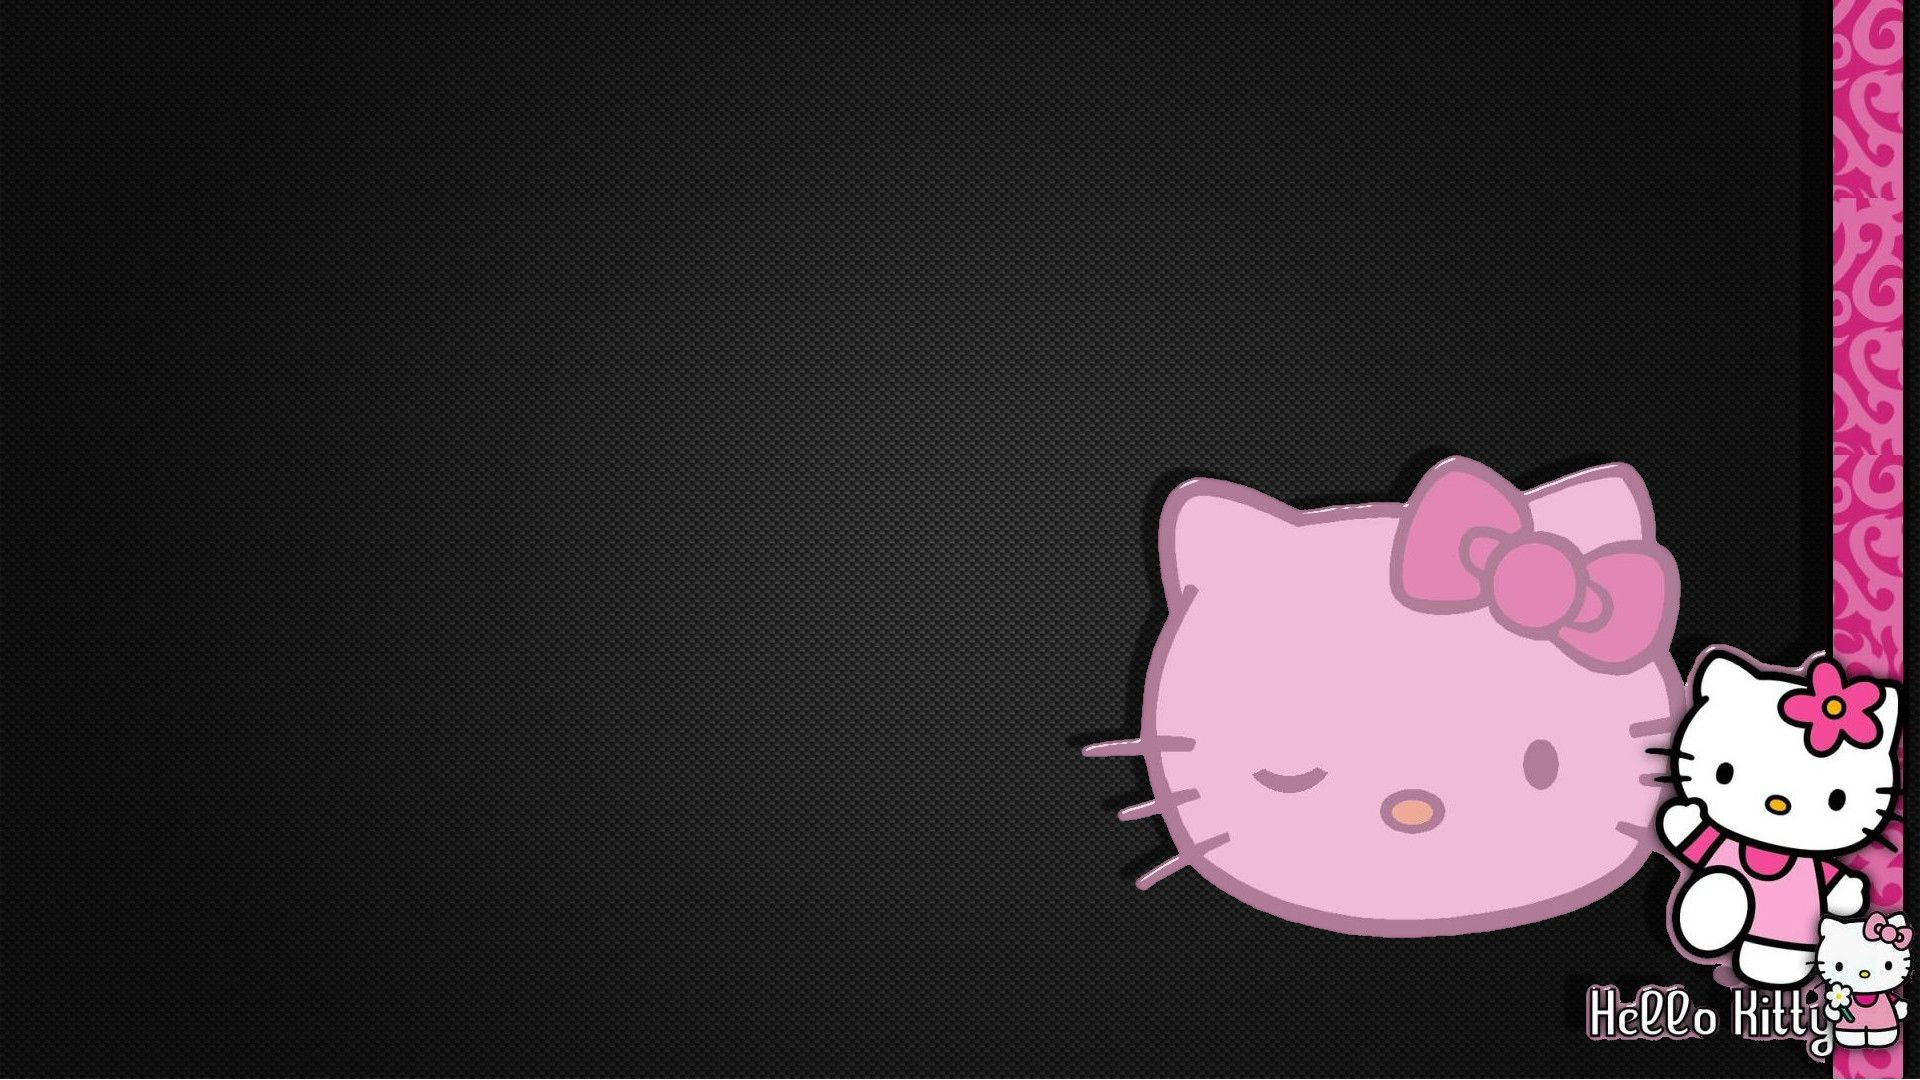 806e251b7 1920x1200 Free Hello Kitty Wallpapers Picture « Long Wallpapers. 1920x1200 Free  Hello Kitty Wallpapers Picture « ...